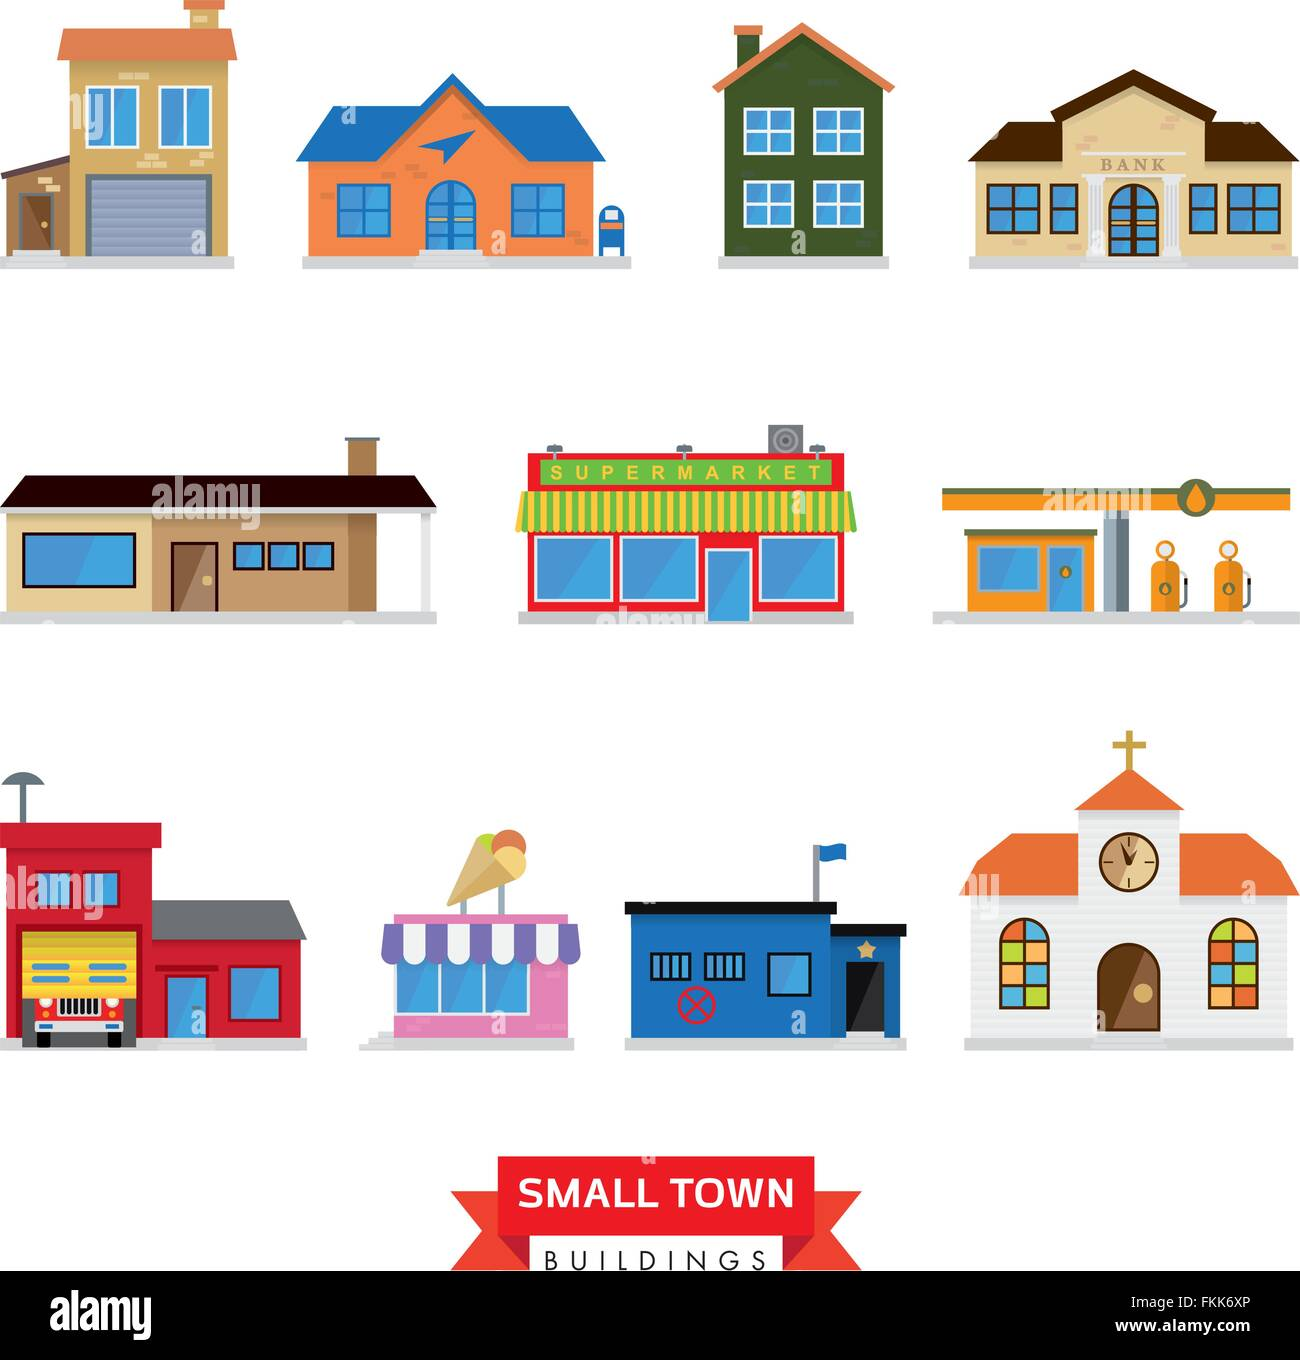 Flat design buildings typical of small towns Stock Vector